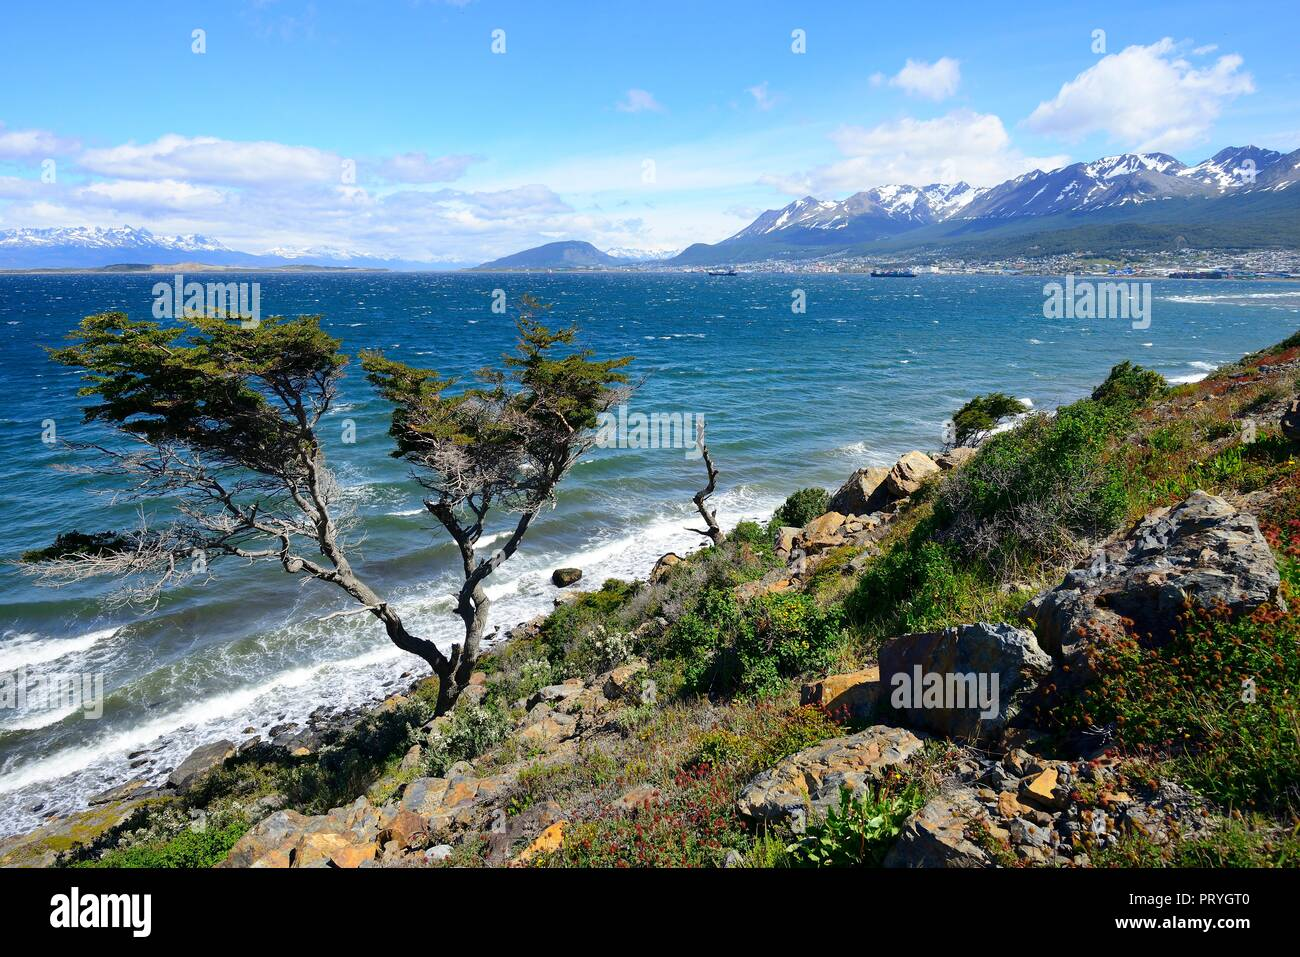 Tousled tree at the Beagle Canal, at the back harbour and town, Ushuaia, Tierra del Fuego Province, Tierra del Fuego, Argentina - Stock Image